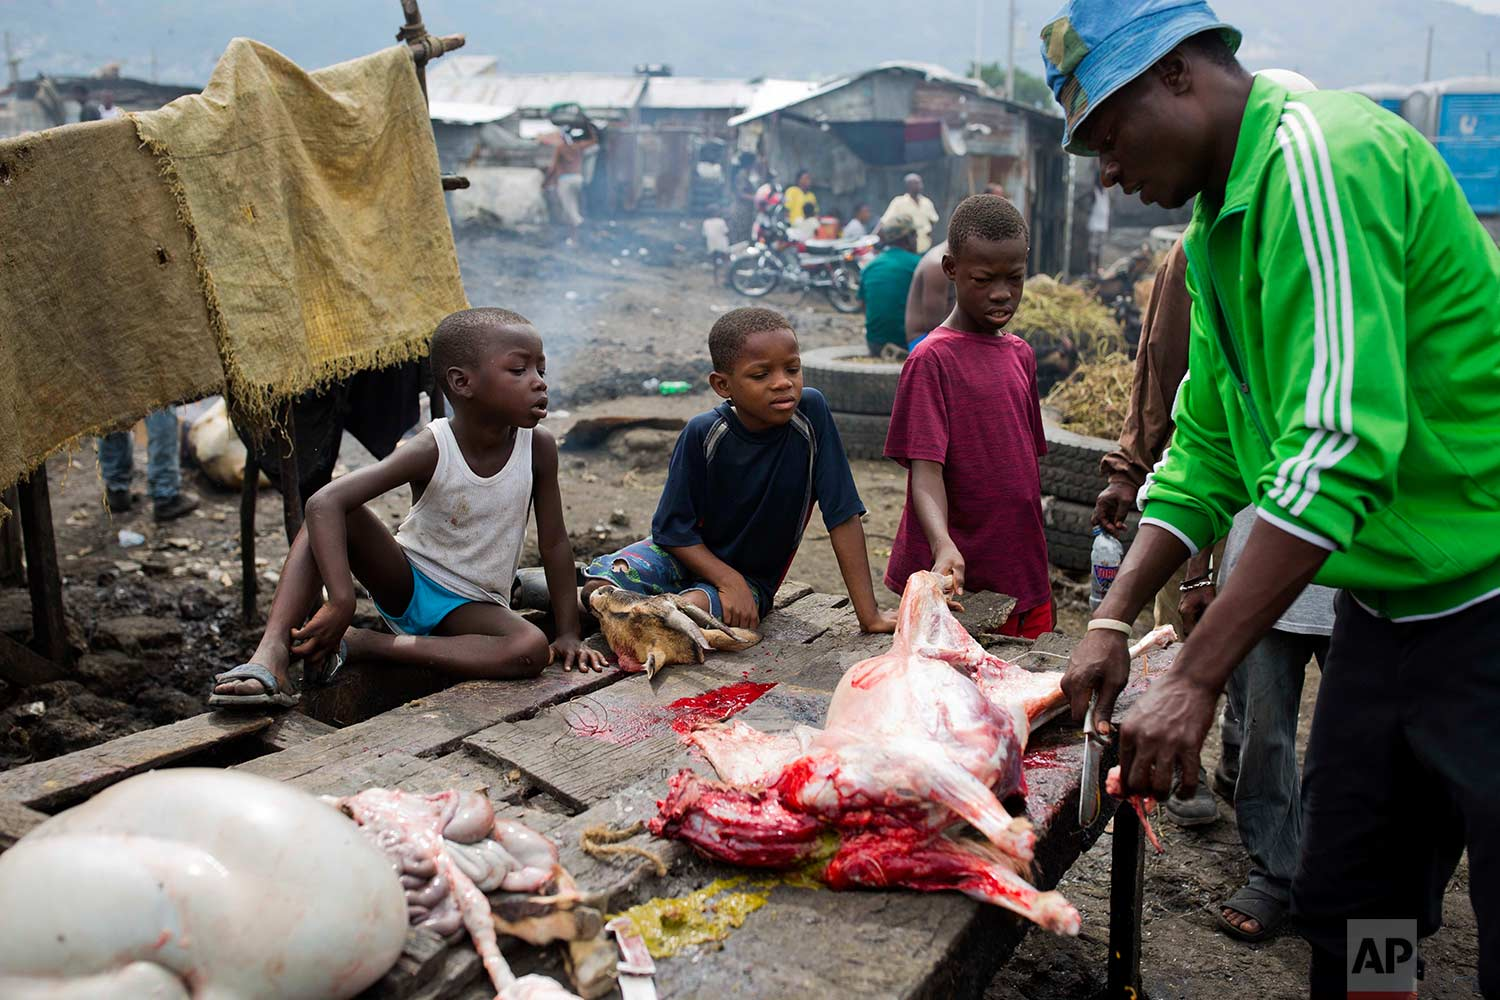 In this Nov. 10, 2017 photo, children watch a butcher portion a goat carcass at the La Saline slaughterhouse, in Port-au-Prince, Haiti. (AP Photo/Dieu Nalio Chery)